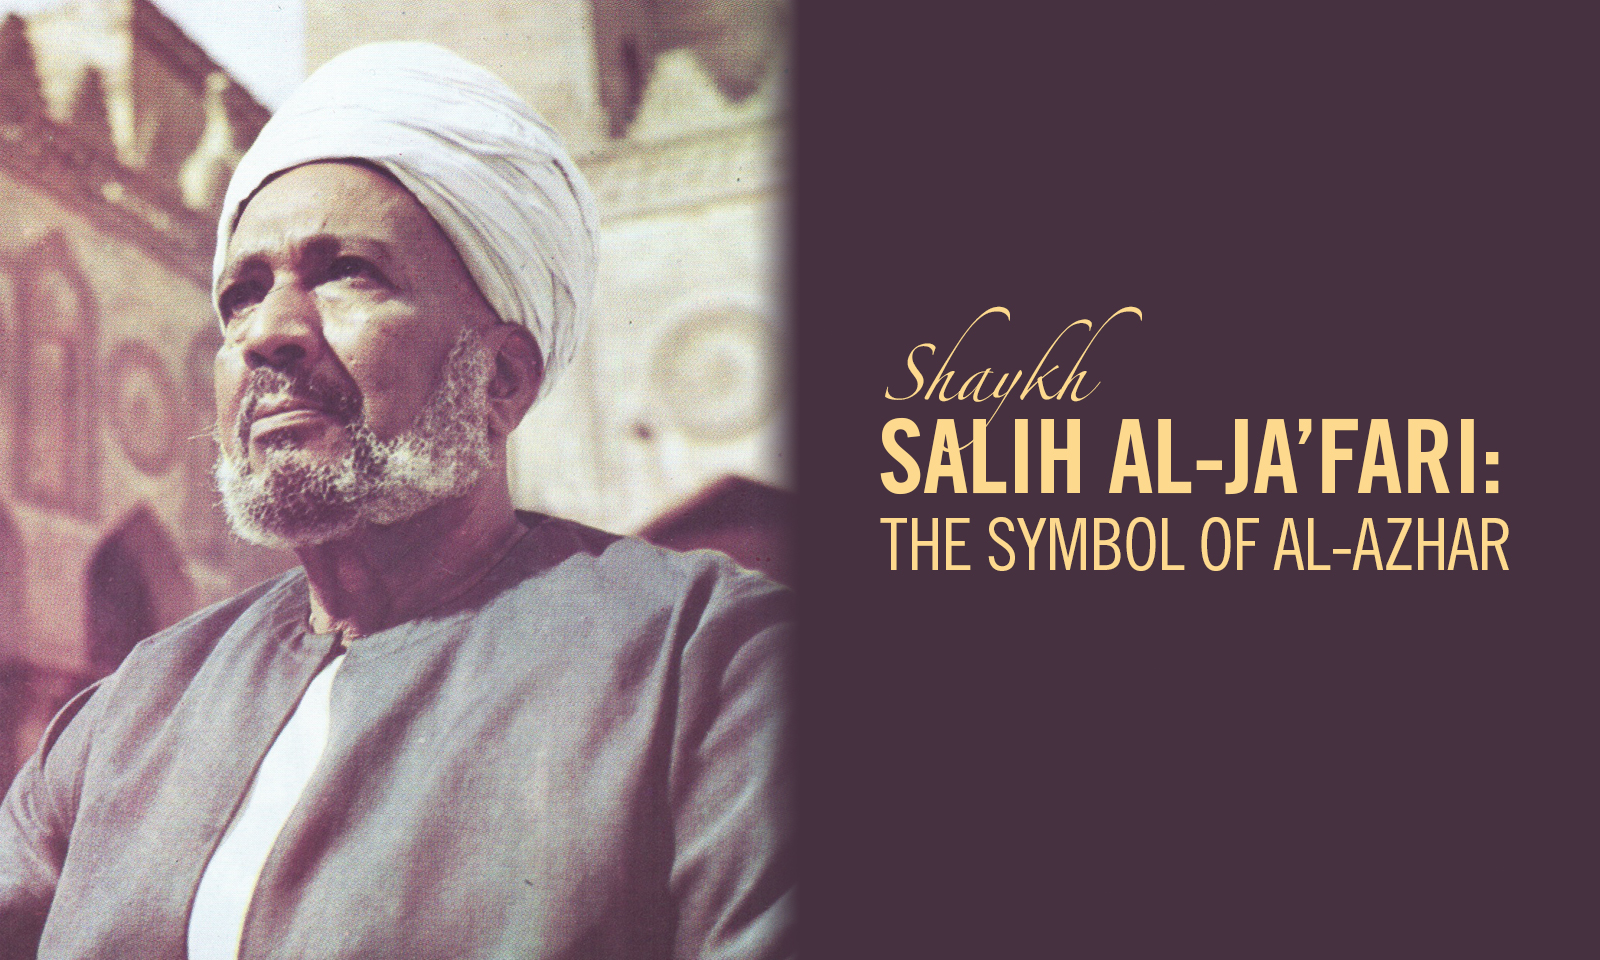 Shaykh Salih al-Ja'fari: The Symbol of Al-Azhar